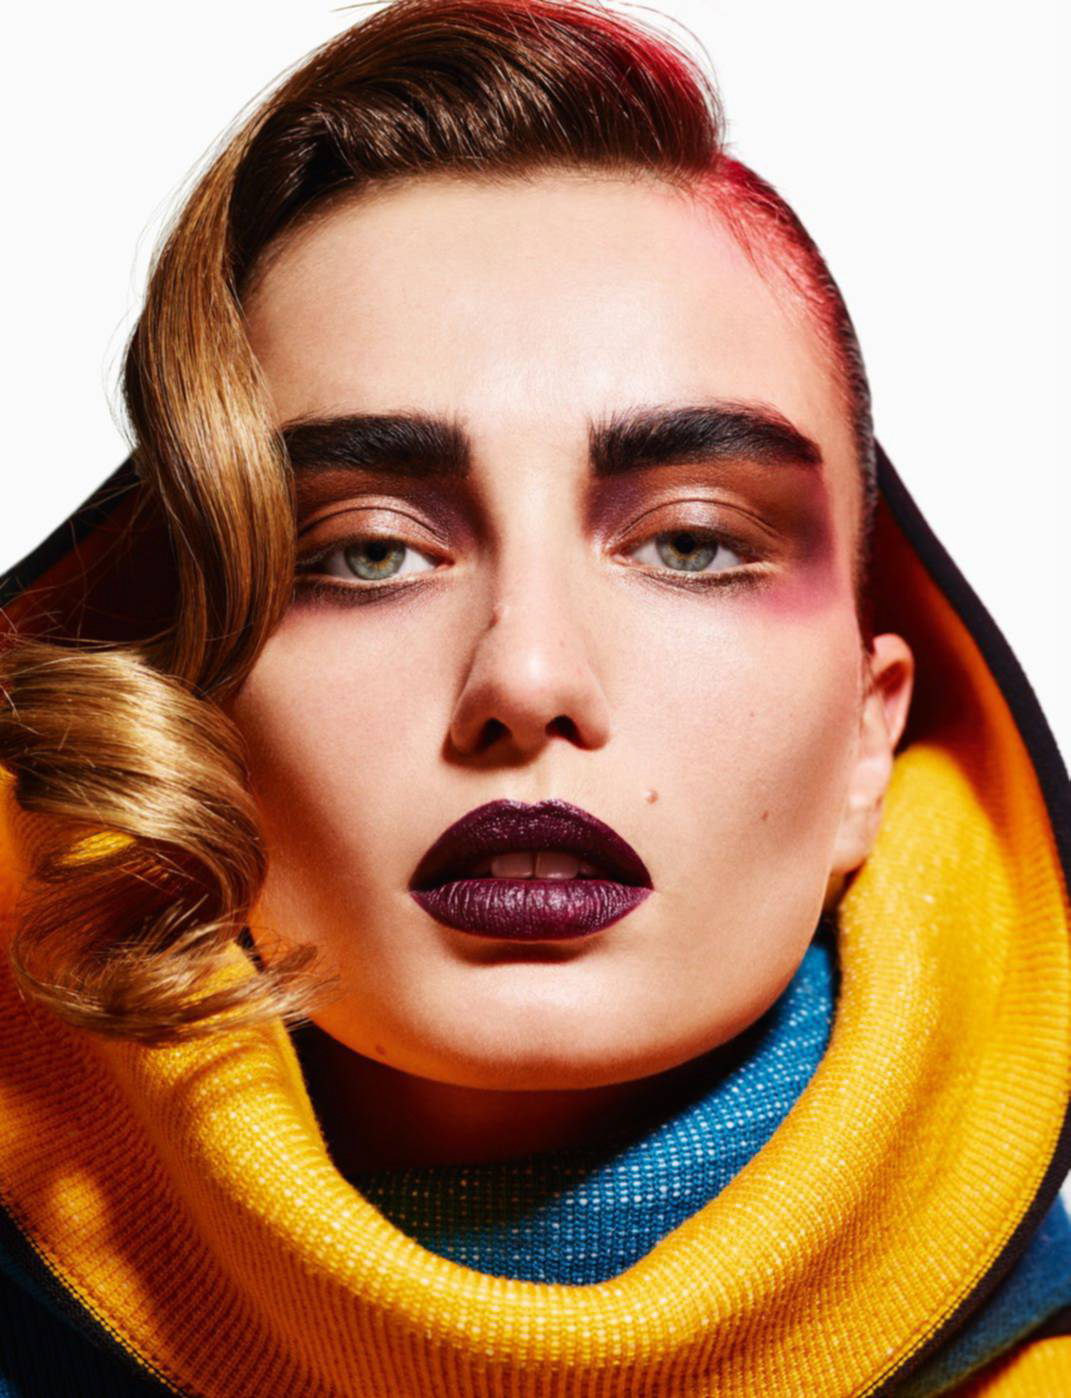 Vogue_Paris-August_2016-05-Andreea_Diaconu-by-Mario_Sorrenti